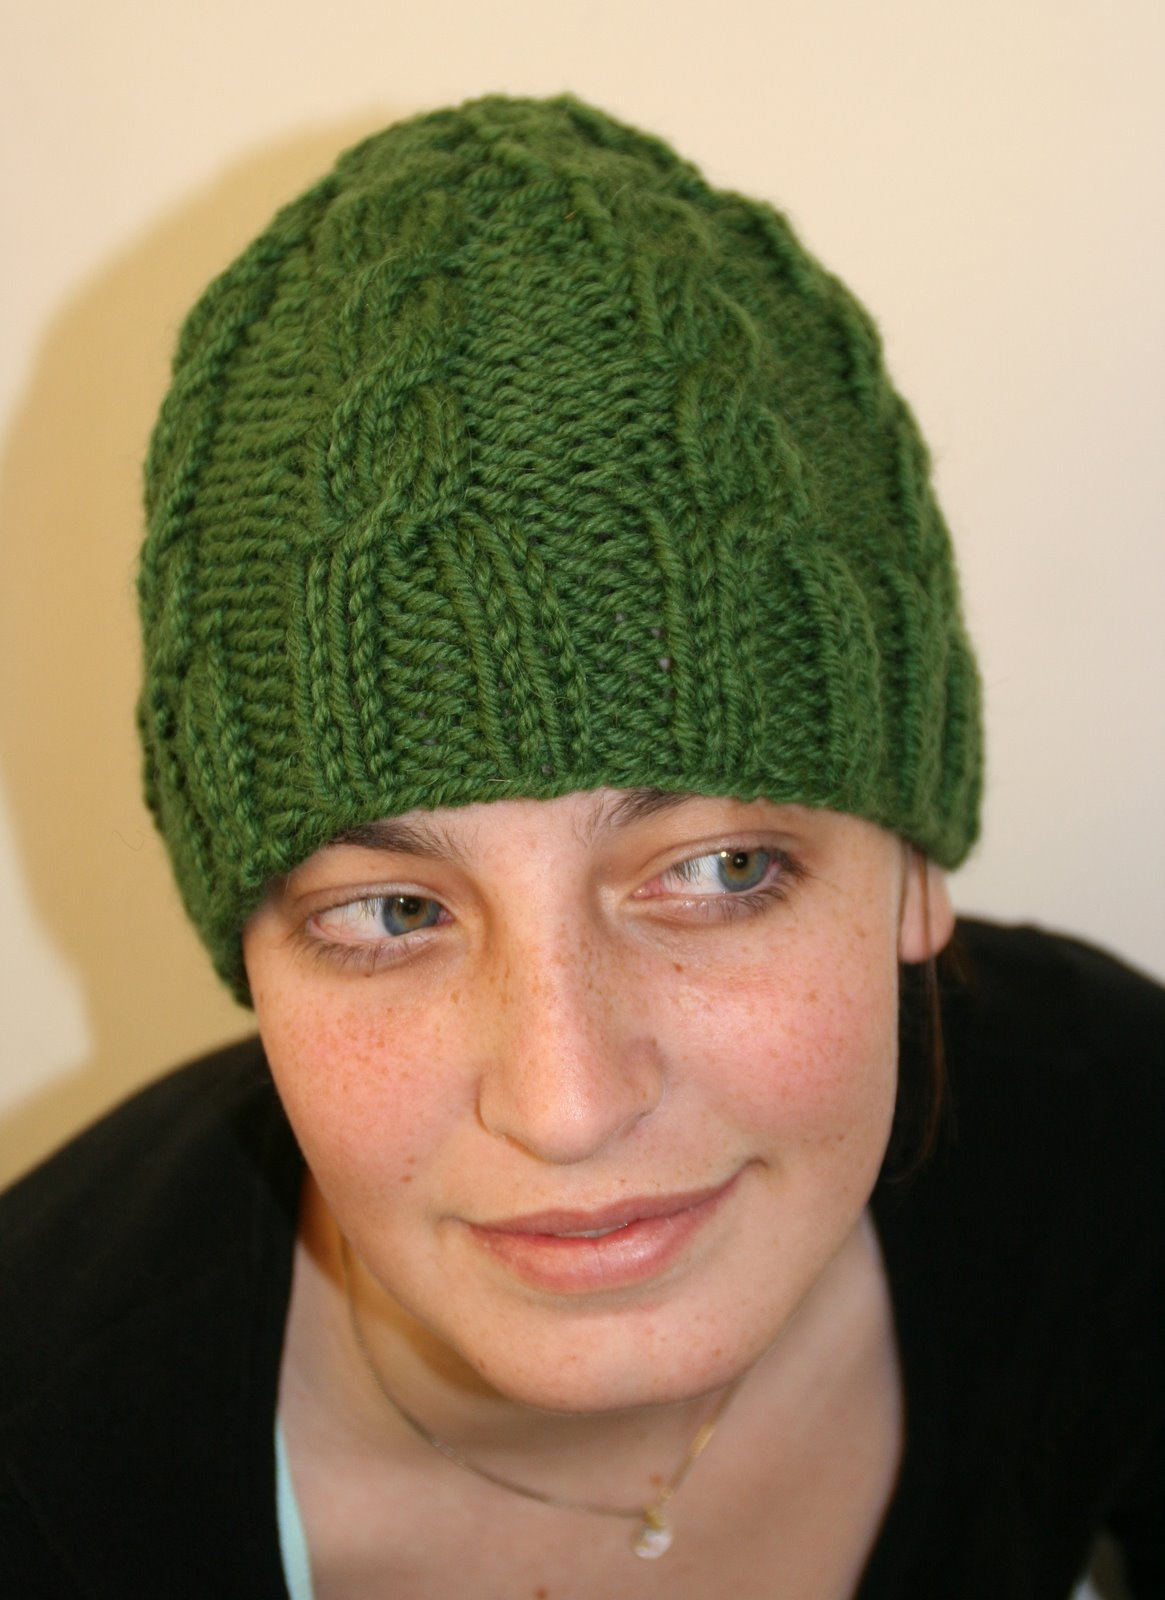 Free Knit Beanie Pattern : Knitting Patterns Free: new knit hat